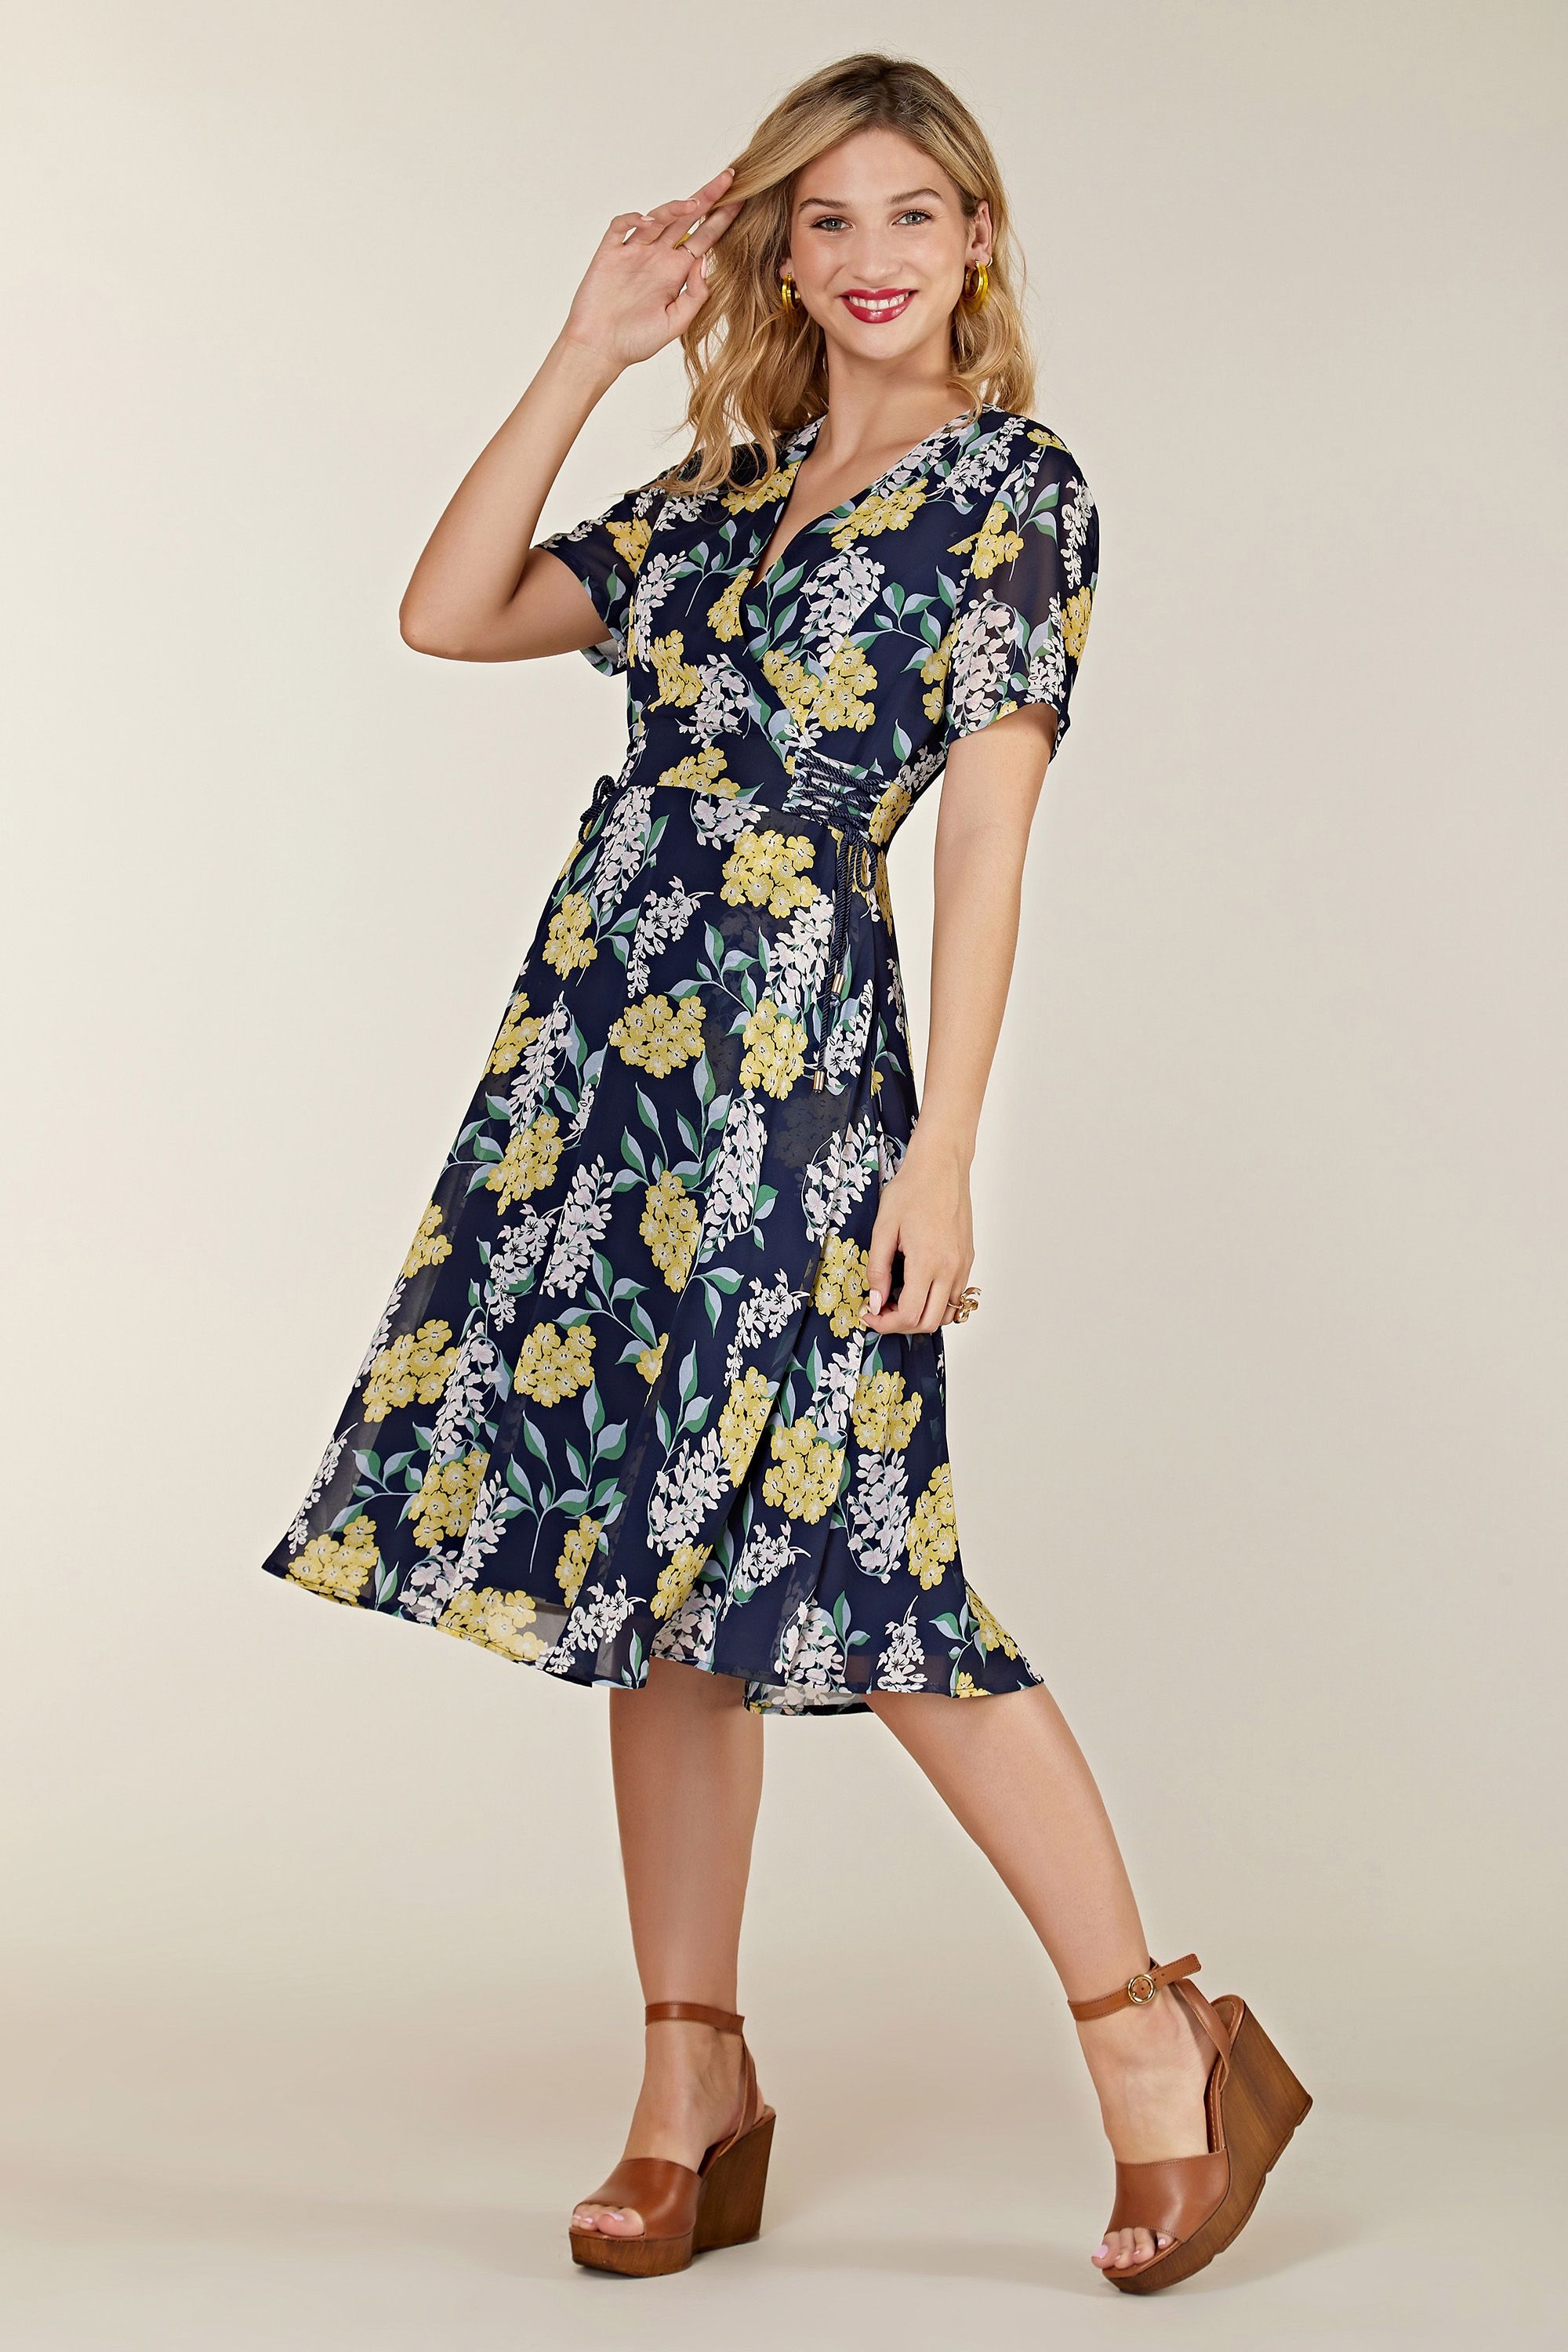 Spring Floral Dress With Tie Detail